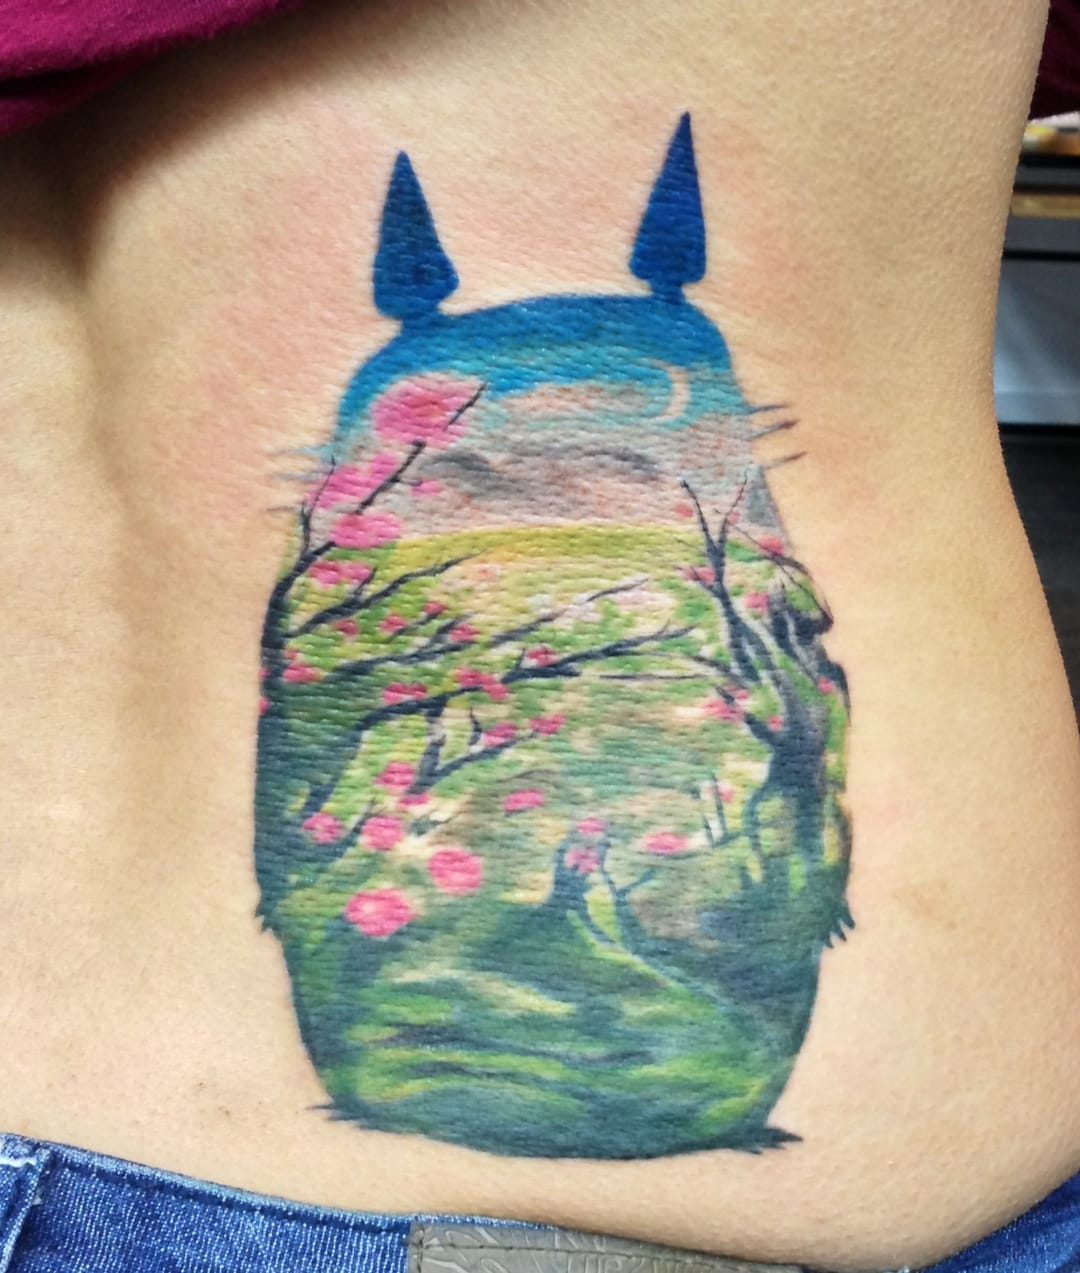 But if you are more courageous (and dedicated), here is the real tattoo version by Allie Sider.